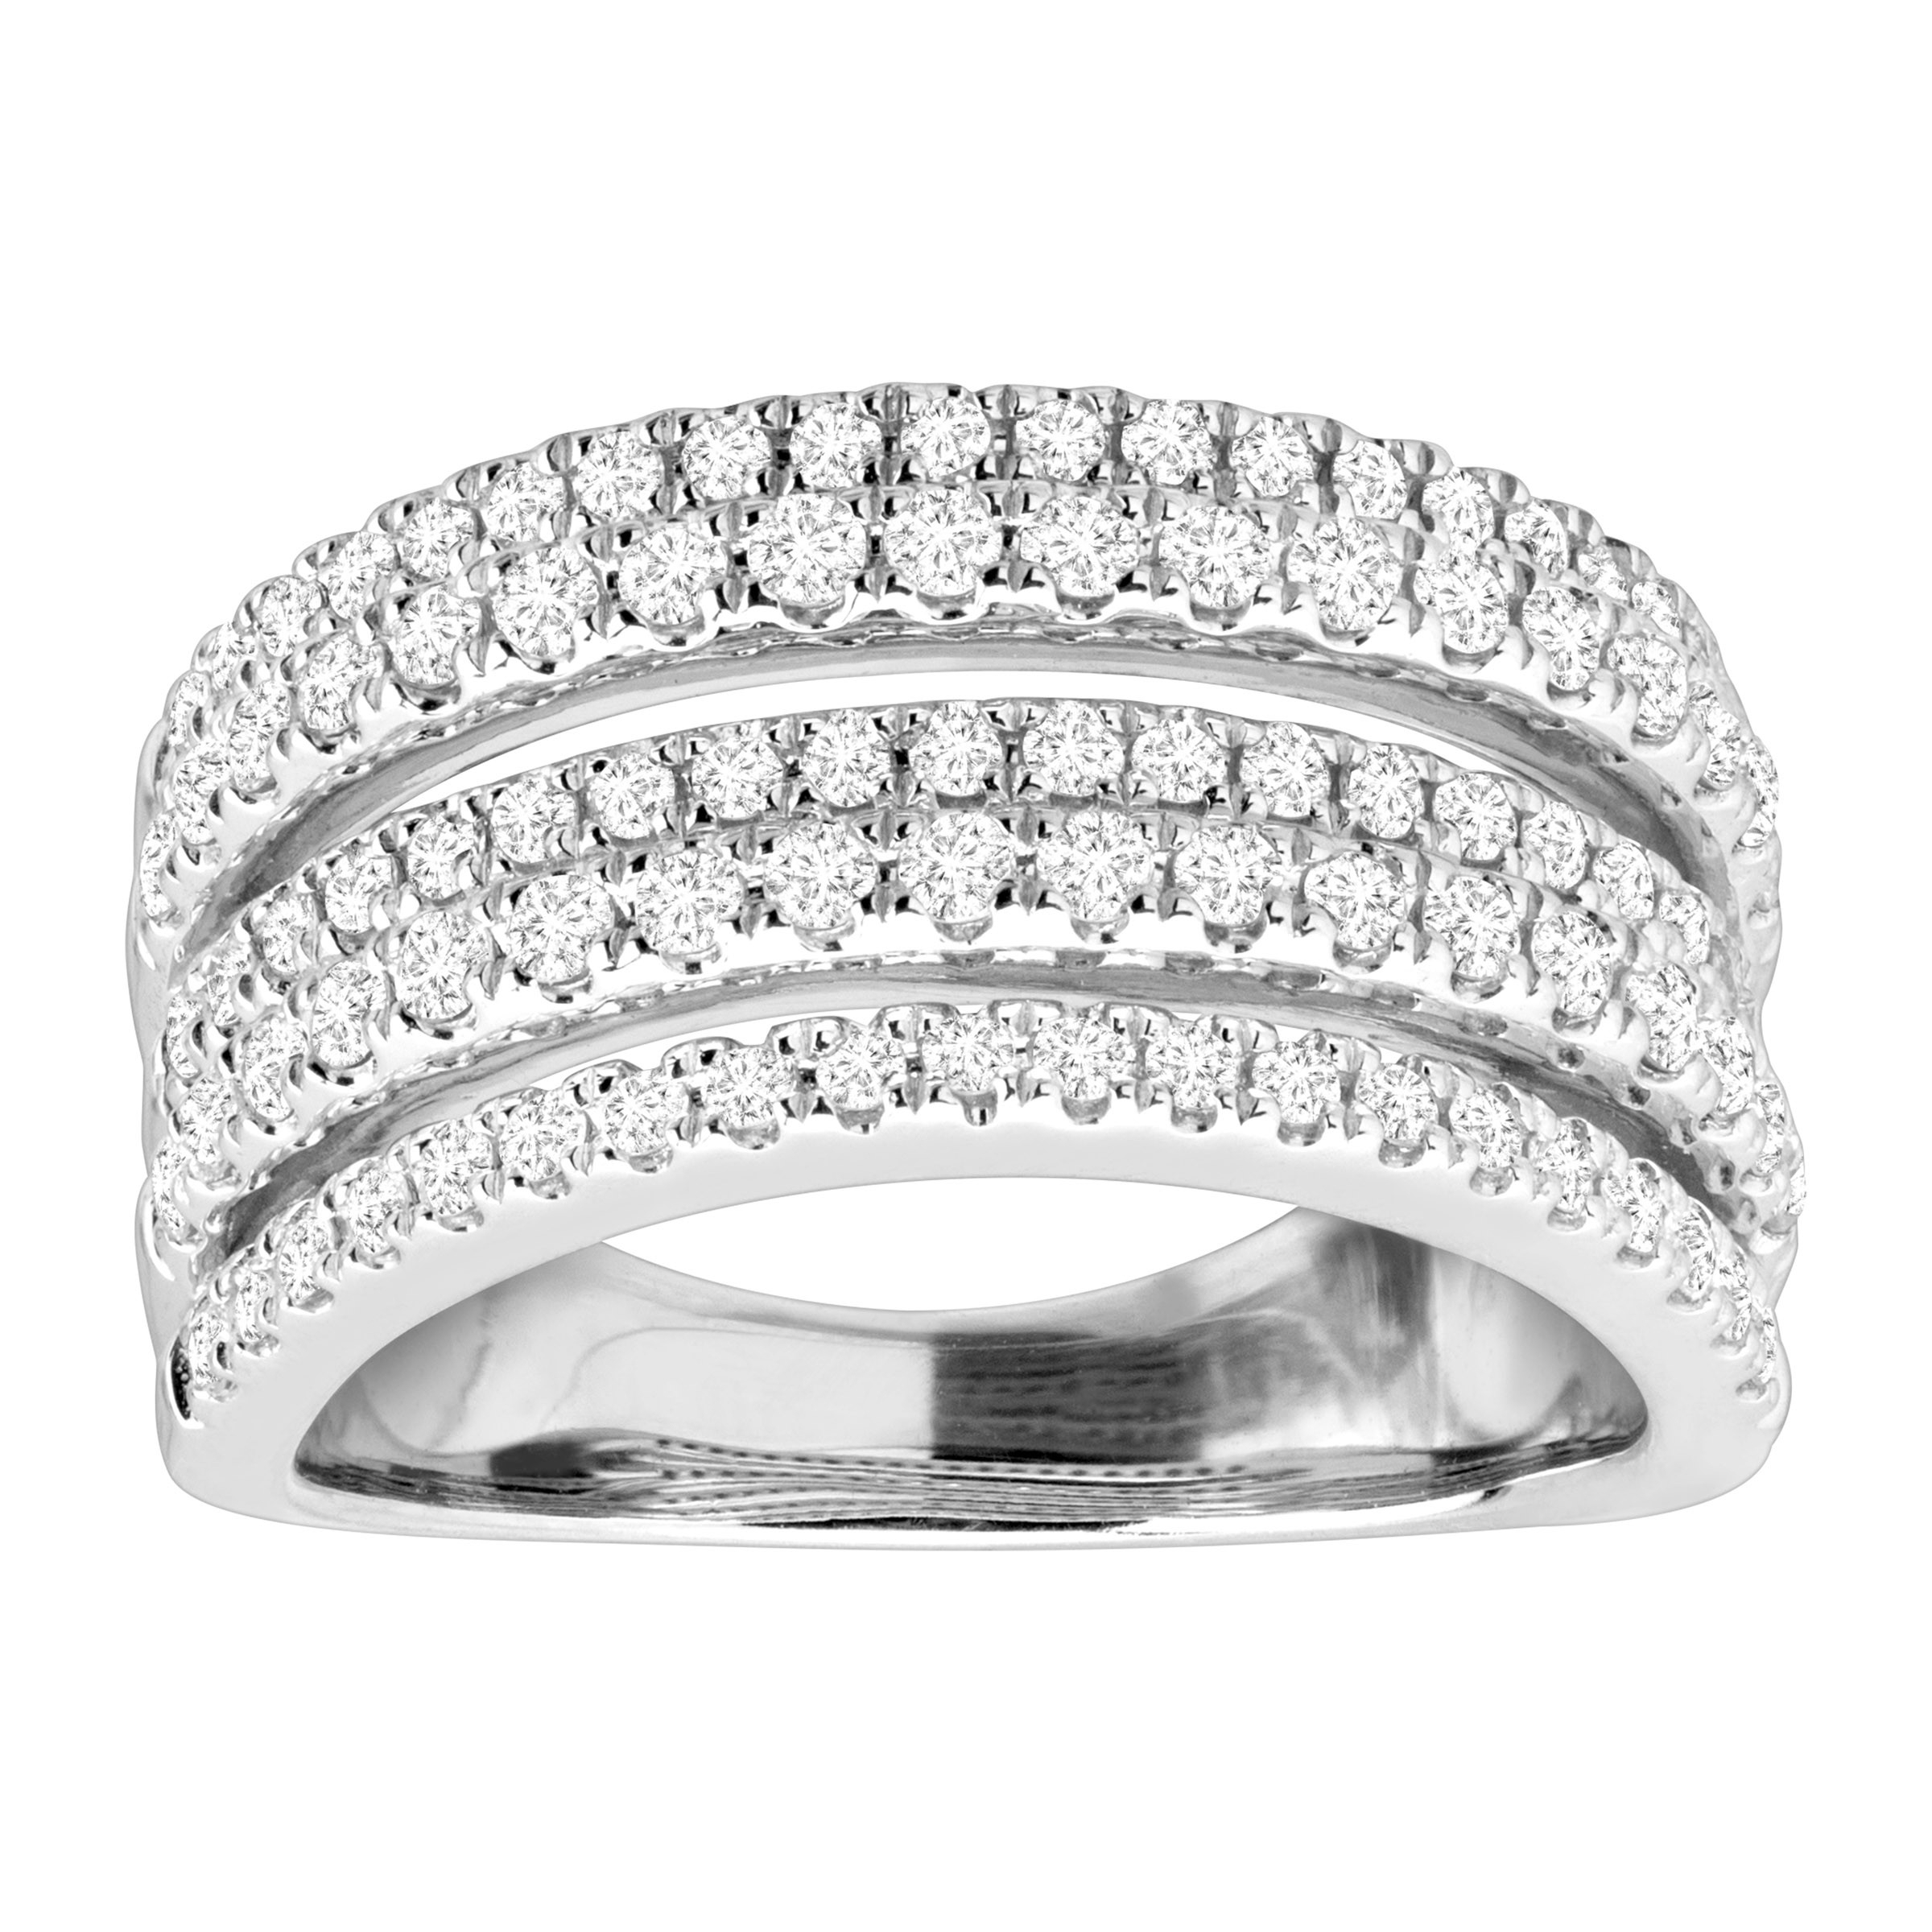 Details About Igi Certified 1 Ct Diamond Multi Band Anniversary Ring In 10K White Gold With Recent Certified Diamond Anniversary Bands In White Gold (View 5 of 25)